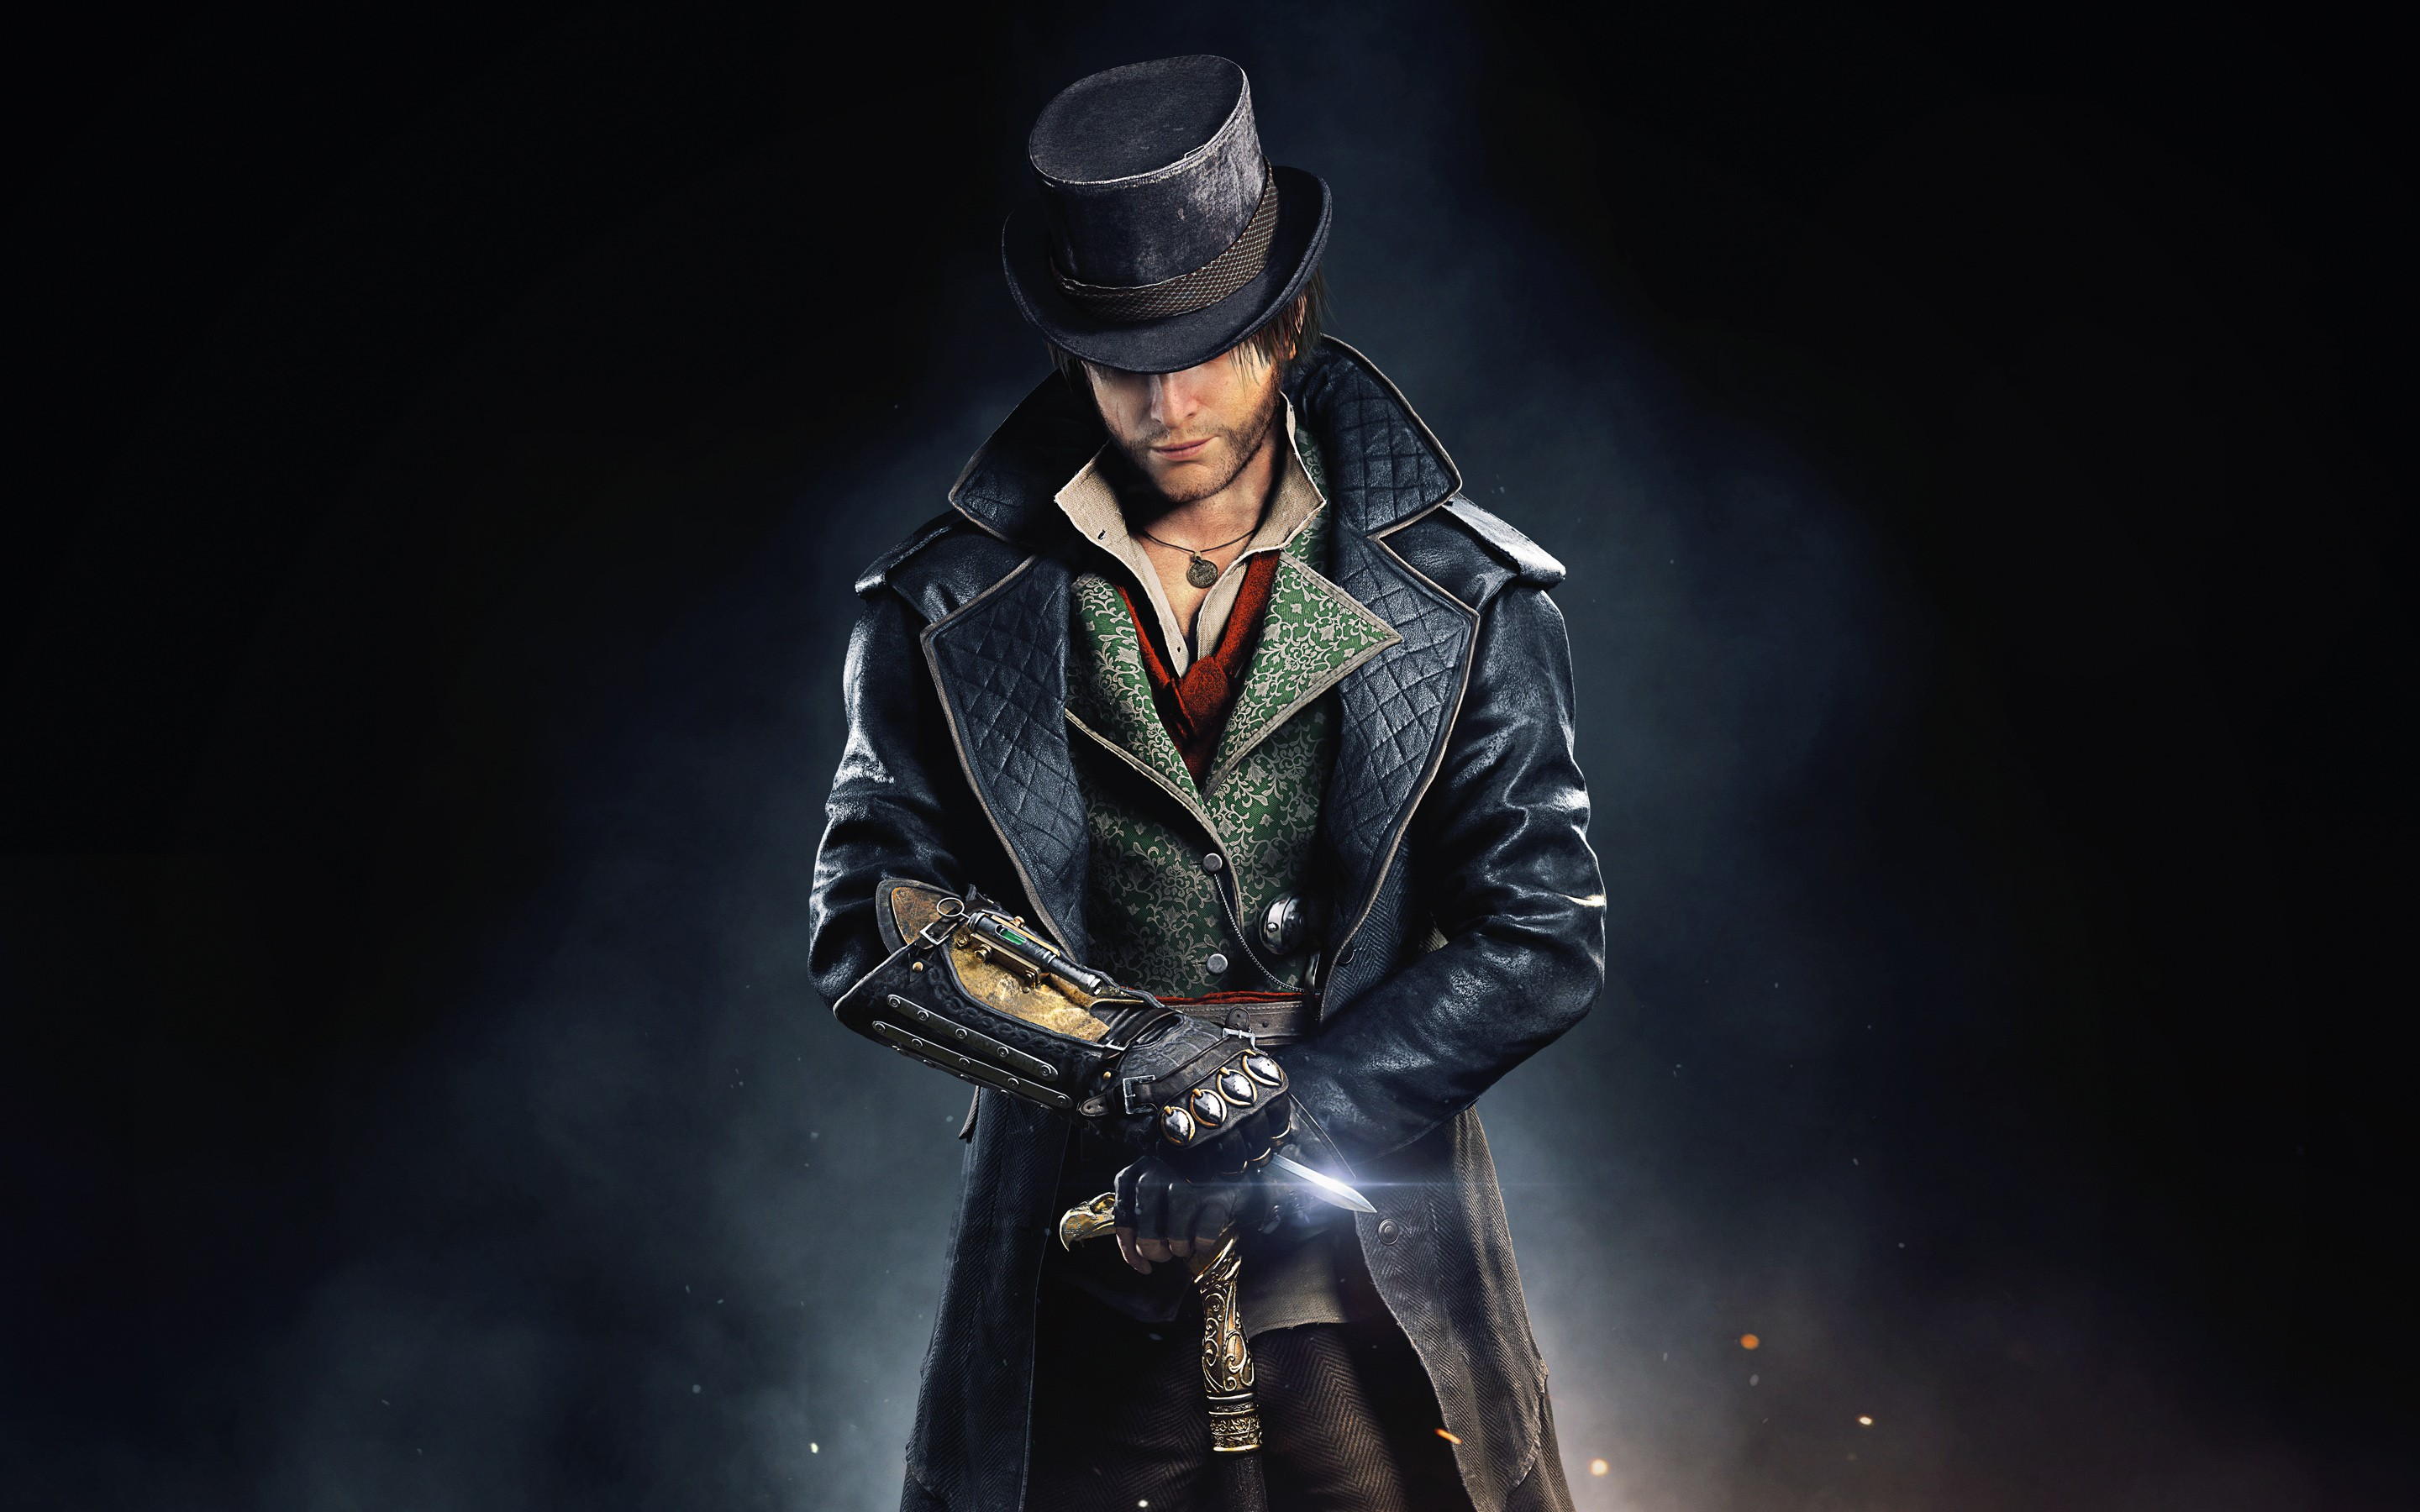 Jacob Fyre Assassins Creed Syndicate Hd Games 4k Wallpapers